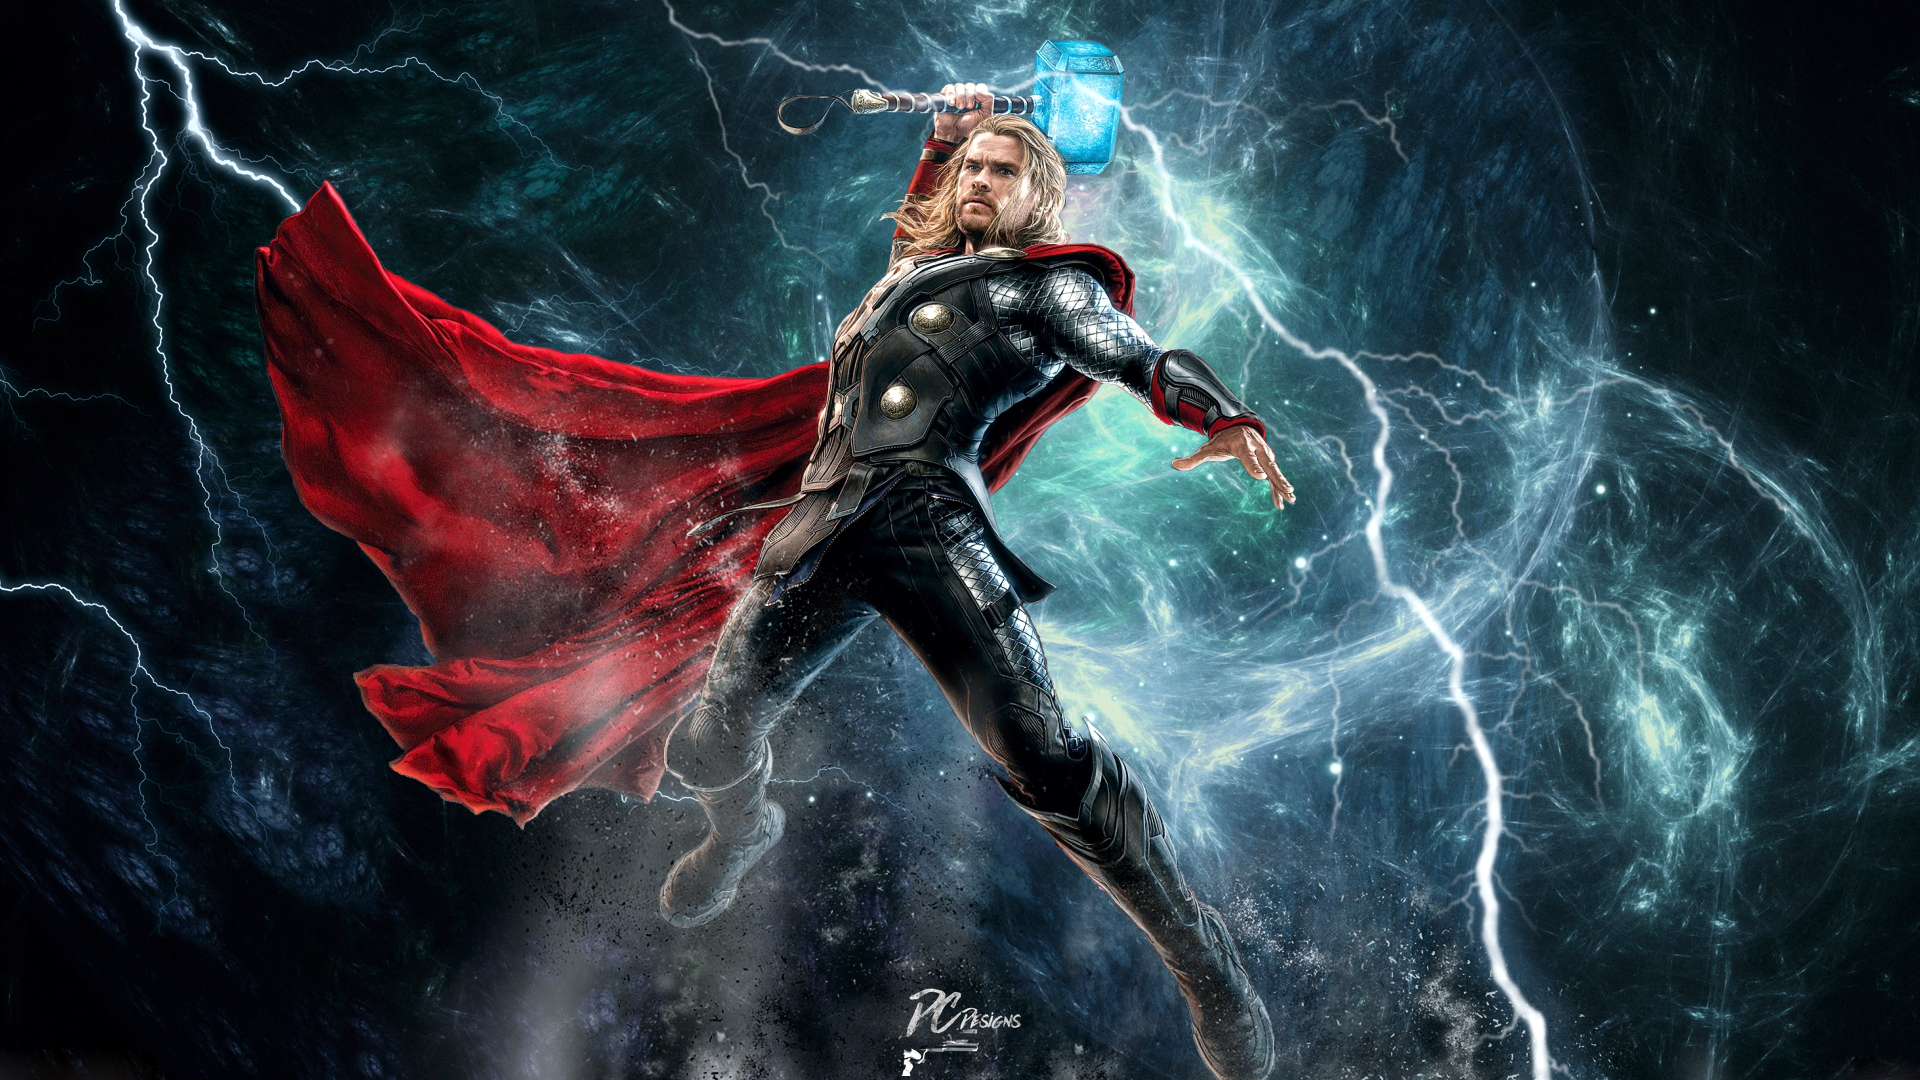 Thor Hd Wallpapers Backgrounds Wallpaper Heroes Villains